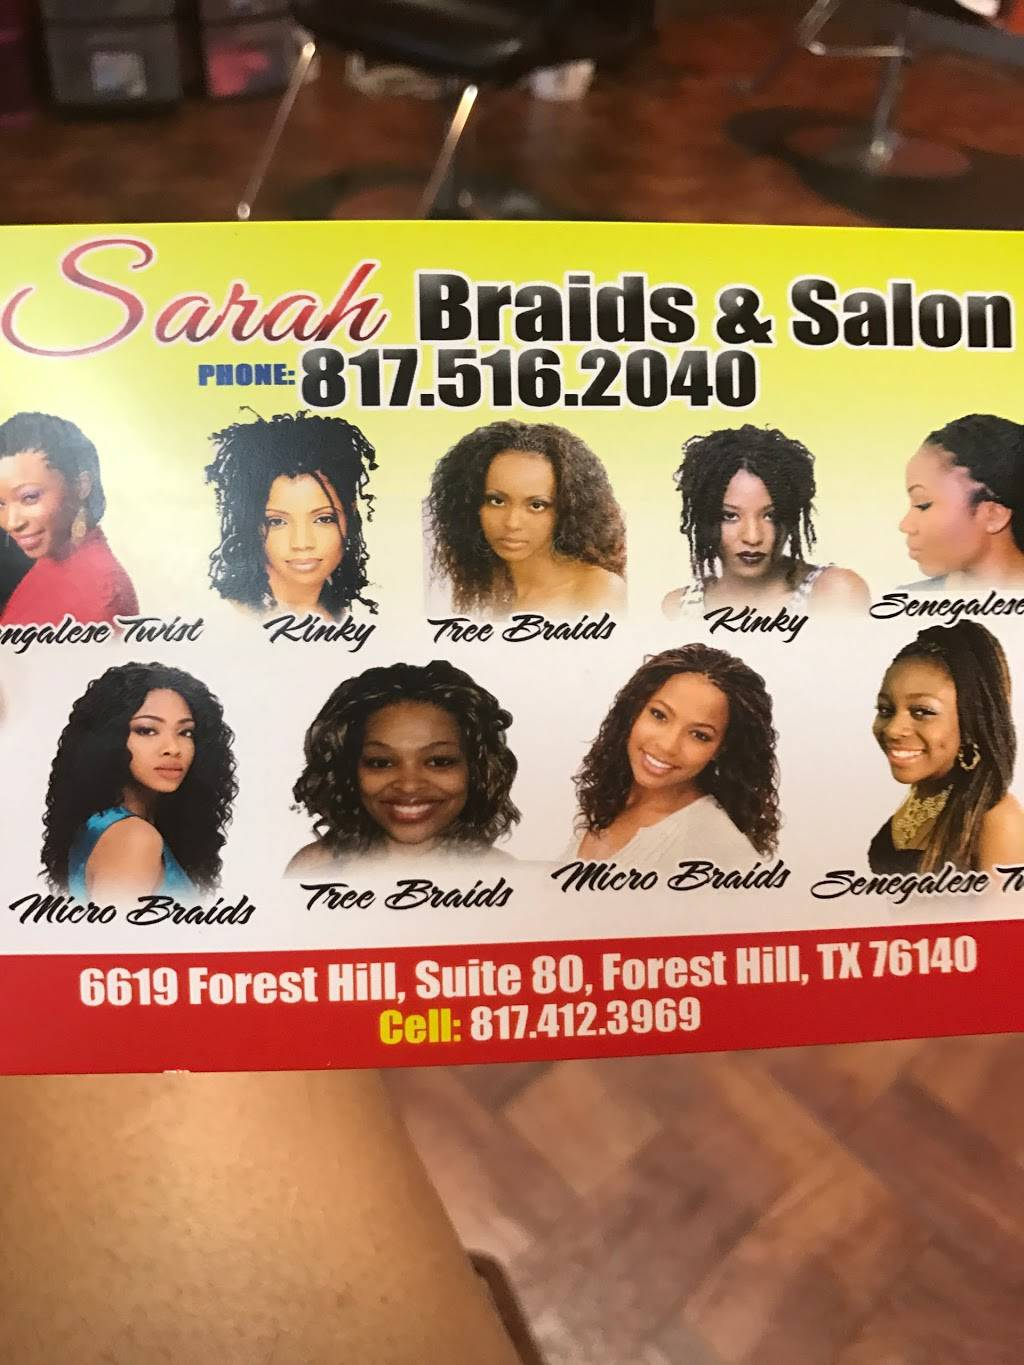 Graces African Hair Braiding - hair care    Photo 4 of 4   Address: 6619 Forest Hill Dr, Fort Worth, TX 76140, USA   Phone: (817) 400-4255